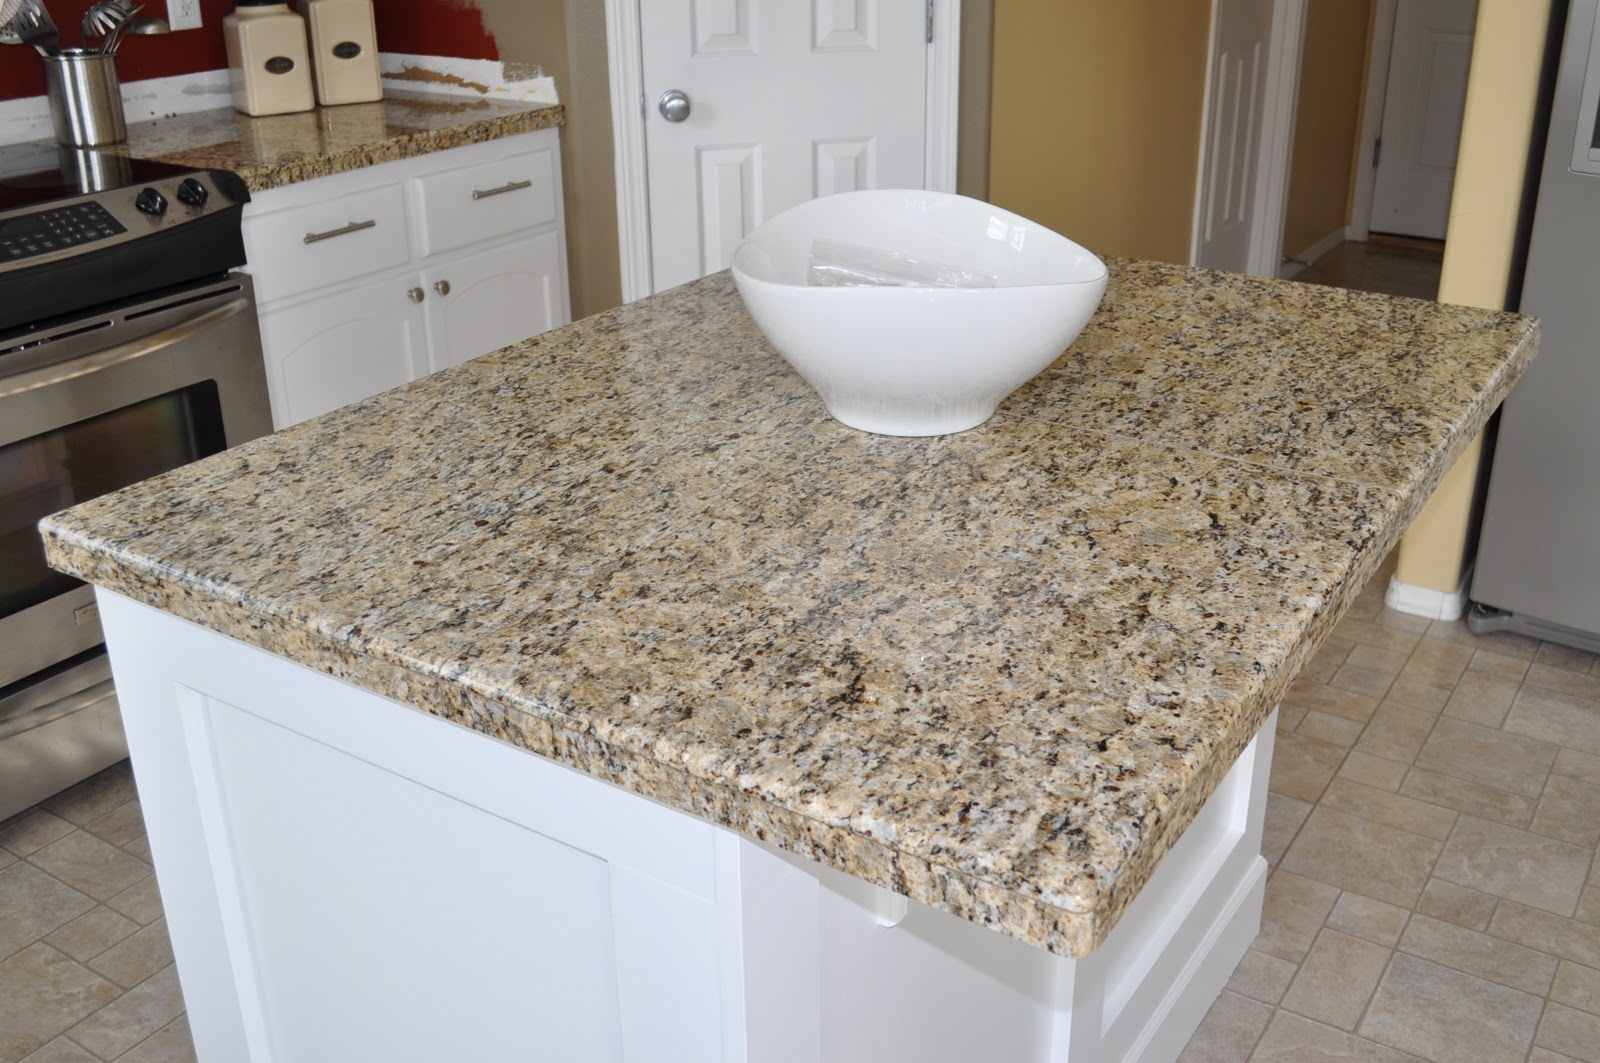 The Dizzy House Diy Granite Mini Slabs Undermount Sink How Much Do Granite  Kitchen Countertops Cost How Much Do Granite Kitchen Countertops Cost